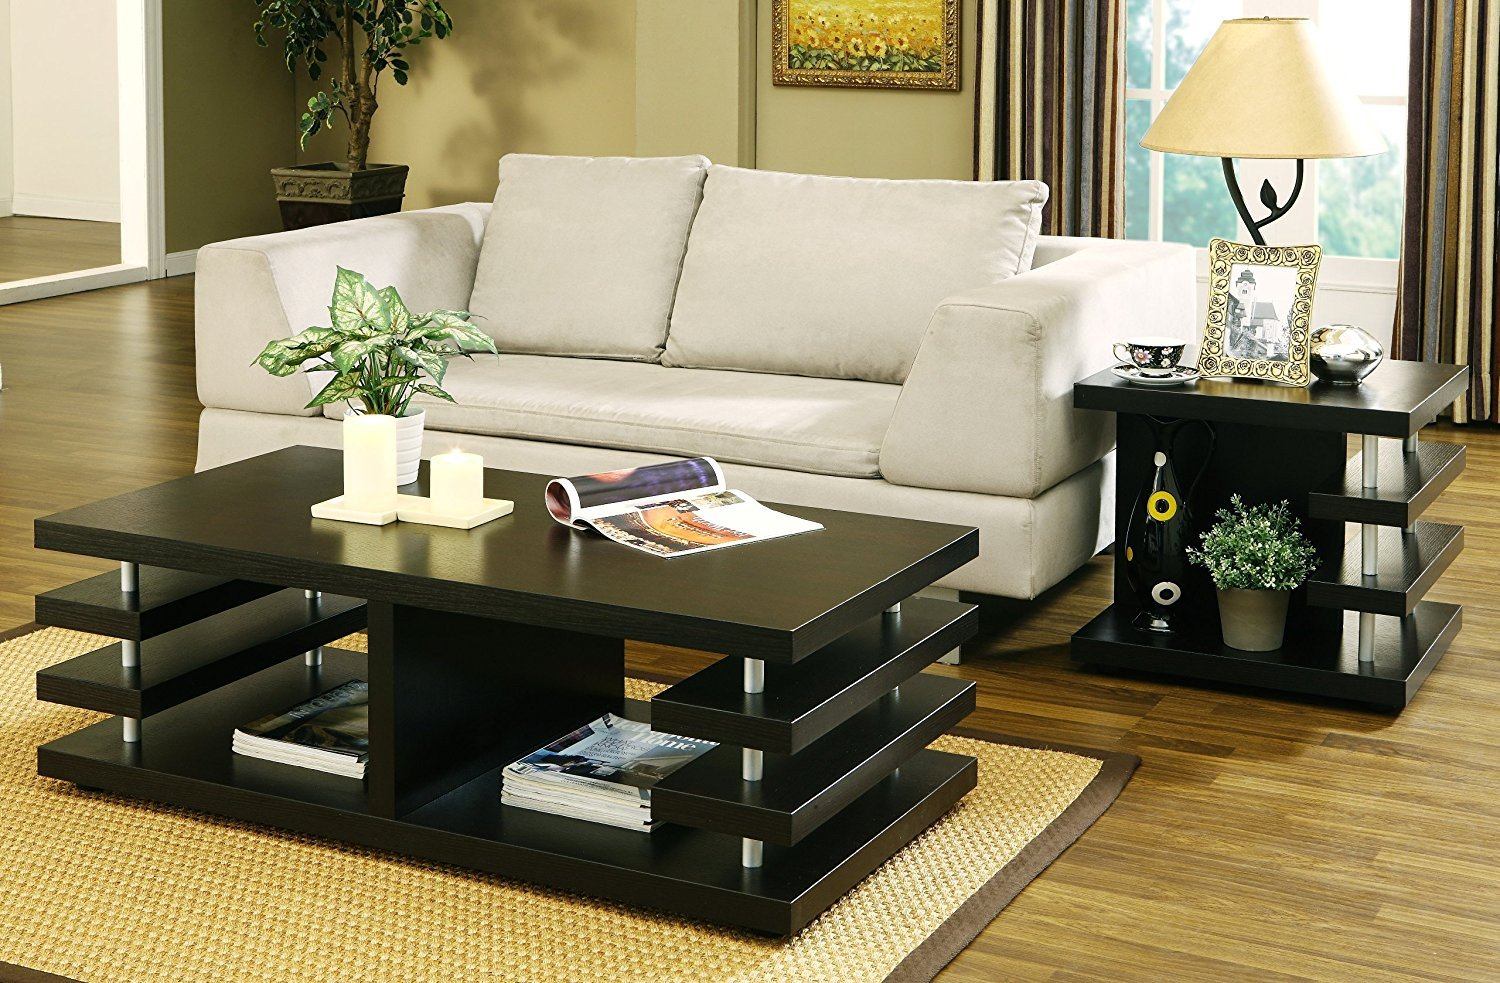 Decor for Living Room Tables Awesome Upgrade Your Living Room with Lovely Coffee and Side Tables